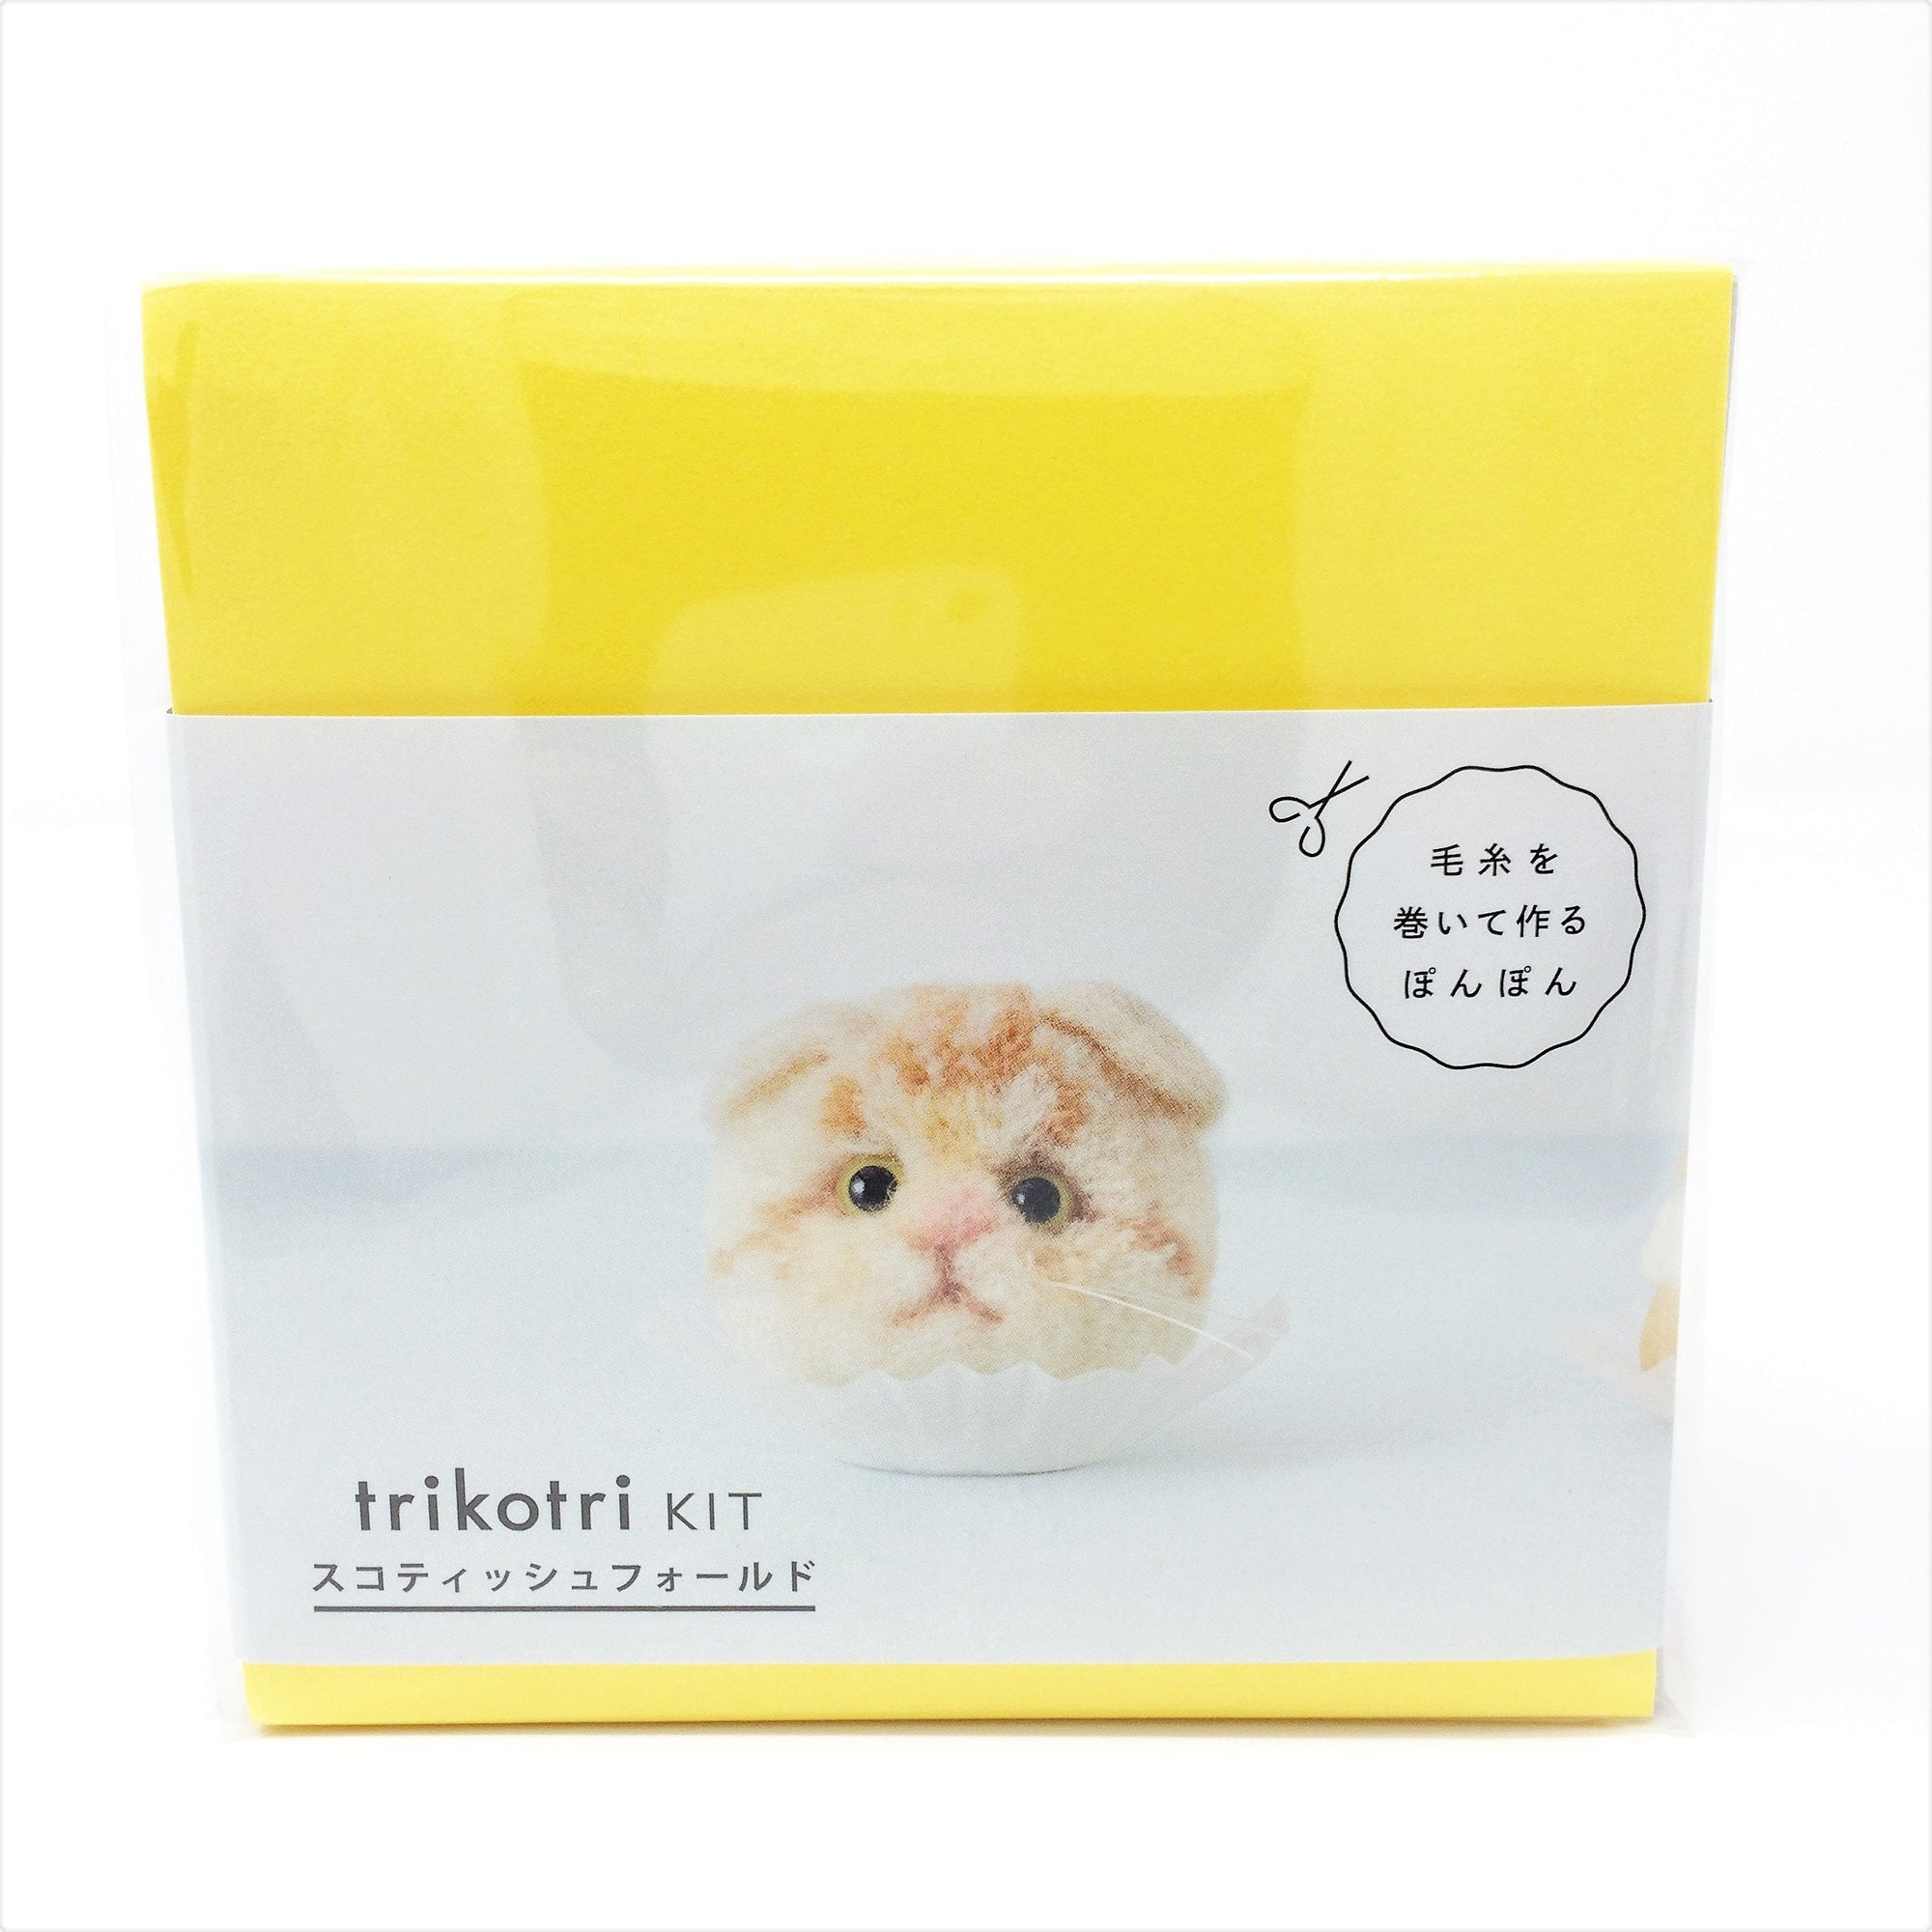 Trikotri KIT - Scottish Fold Cat Pom Pom Kit